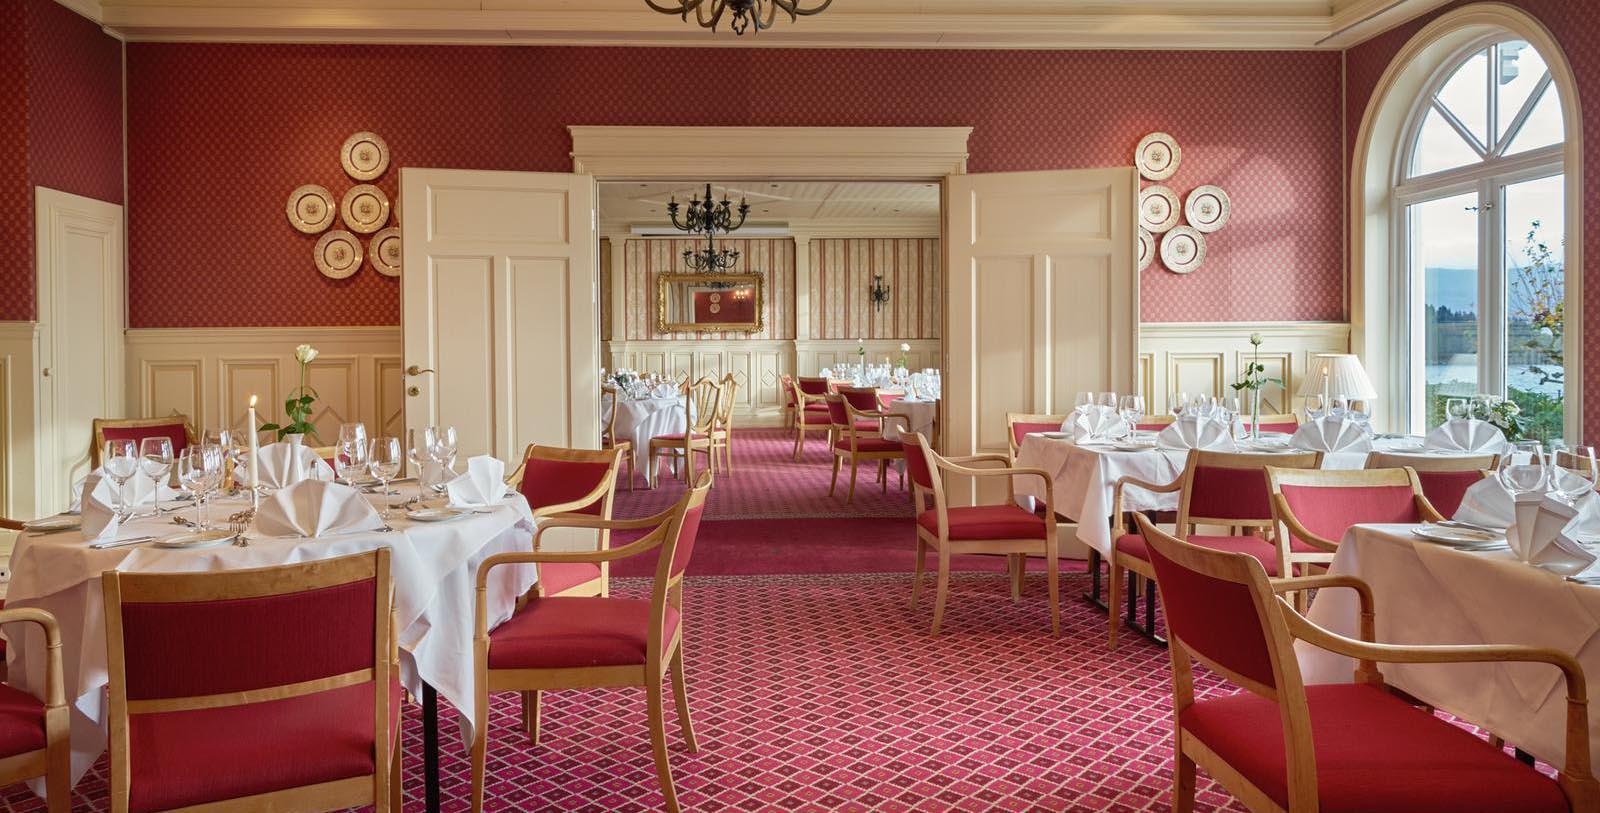 Image of Dining Room at Solstrand Hotel & Bad, 1896, Member of Historic Hotels Worldwide, in Os, Bergen, Norway, Taste